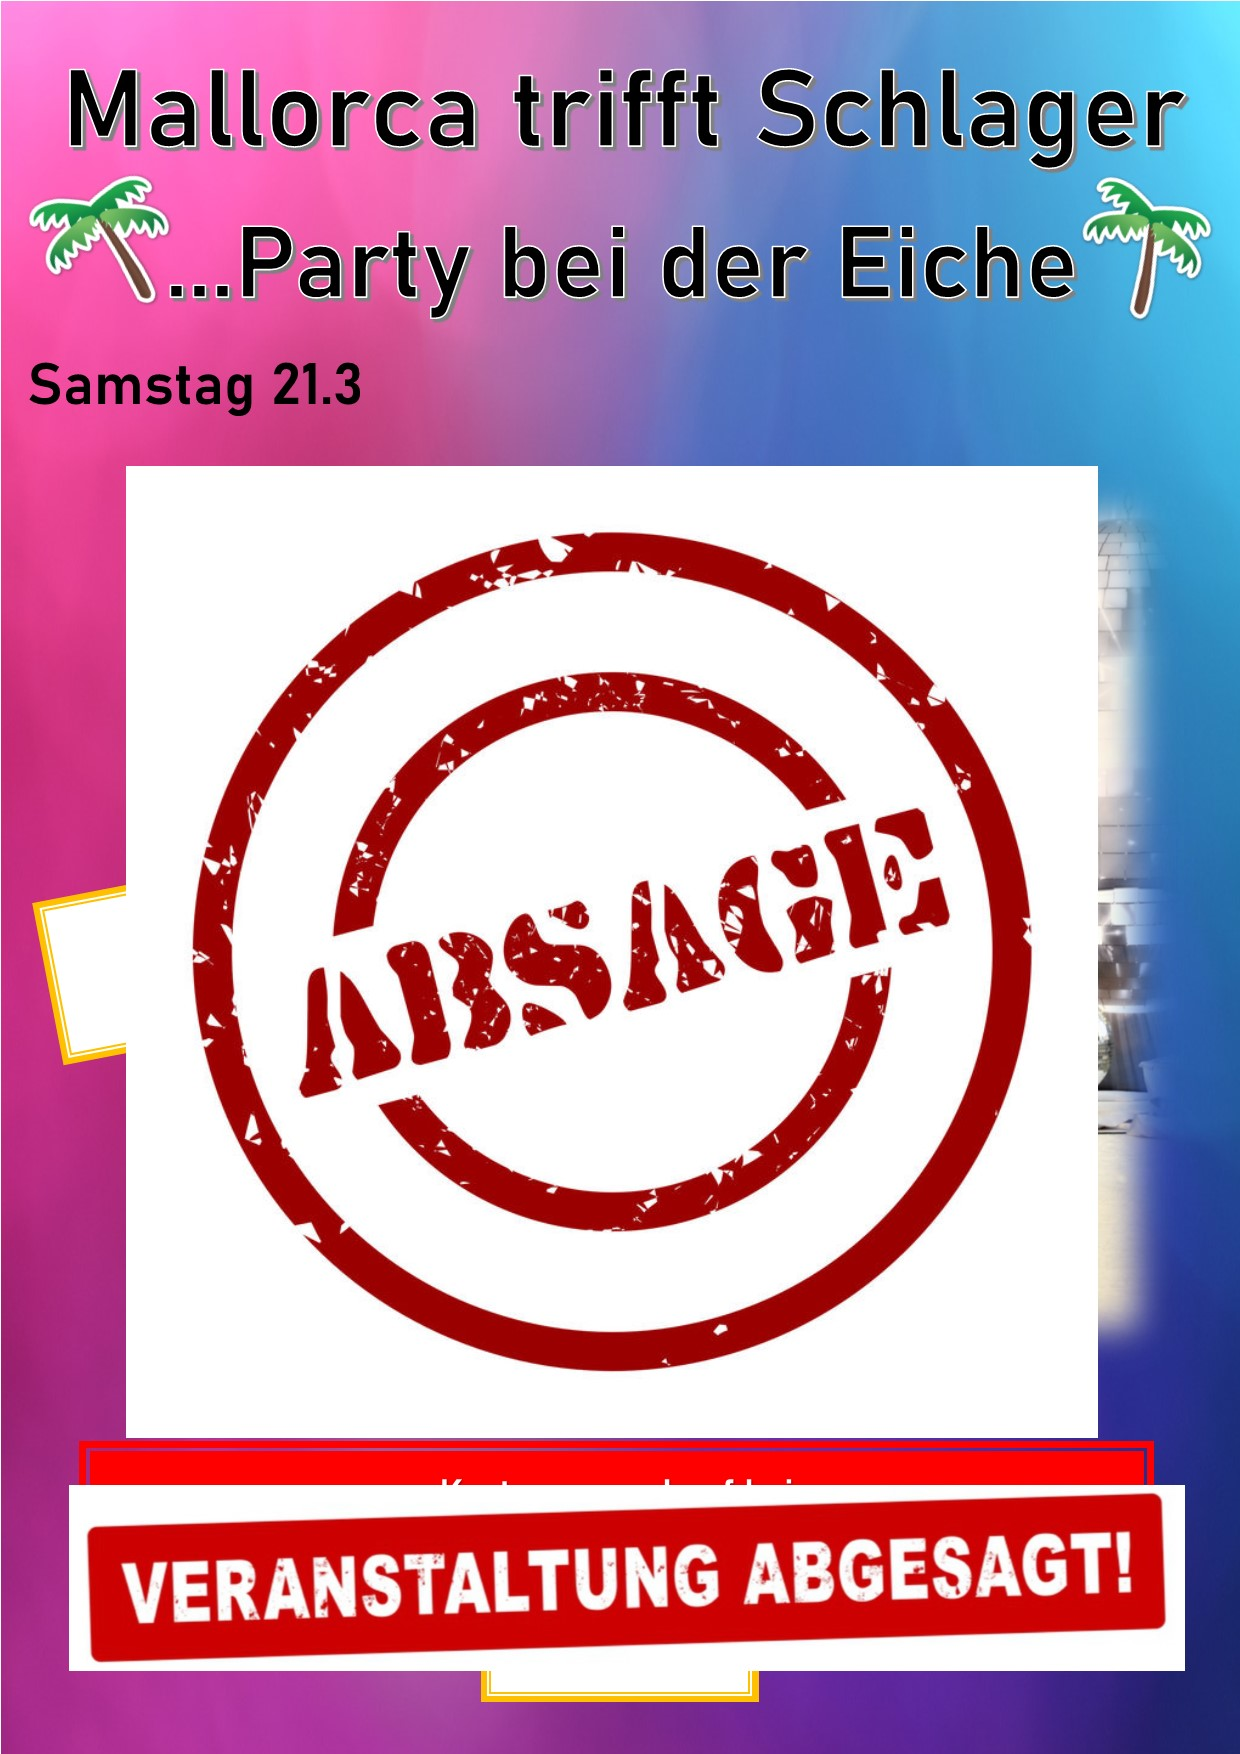 Absage - Mallorca trifft Schlager